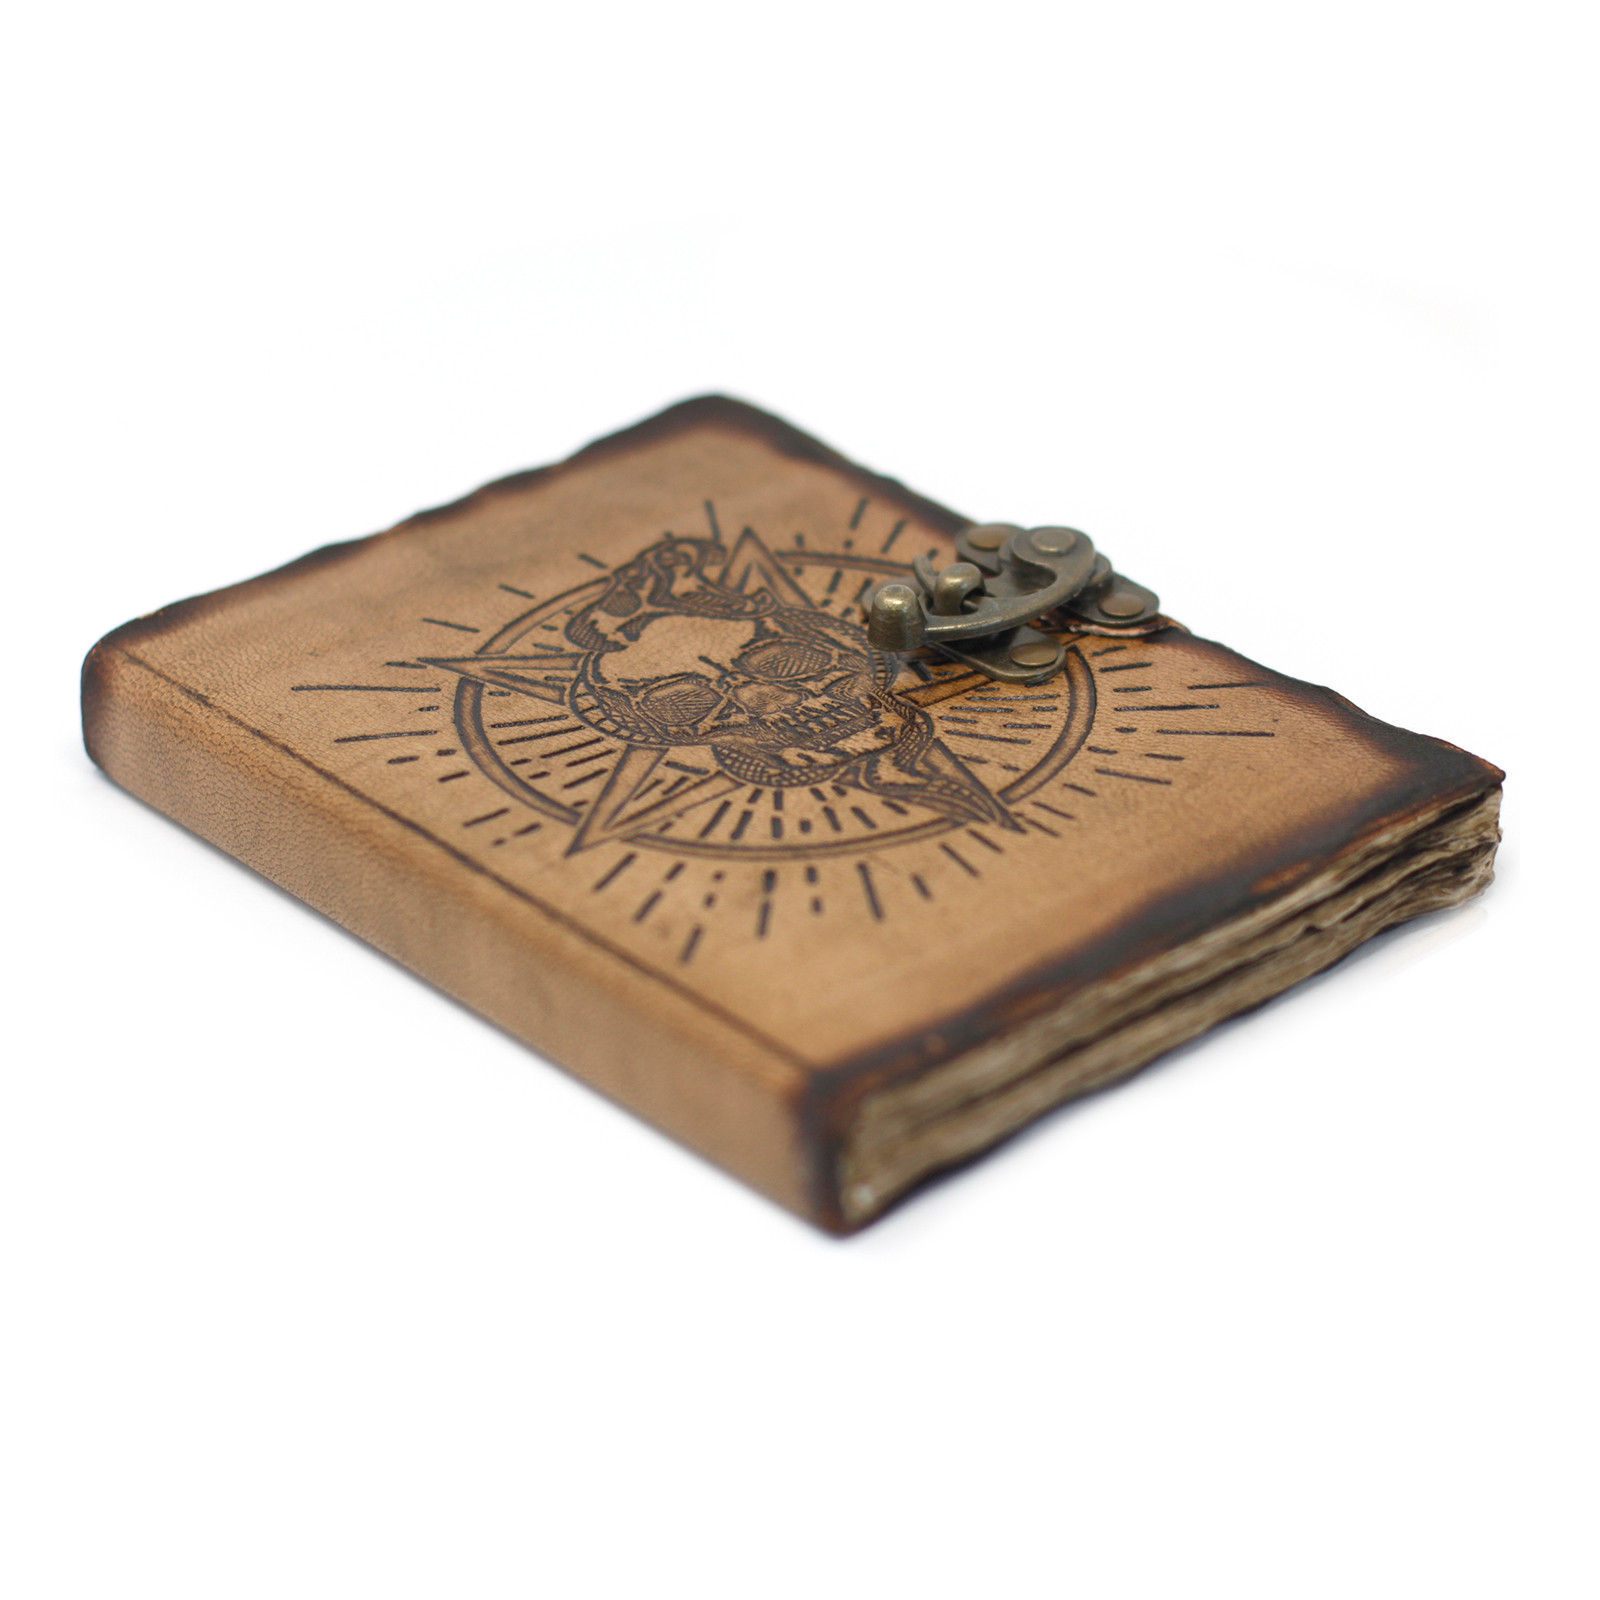 Leather Pentagon   Skull with Burns Detail Notebook 7x5